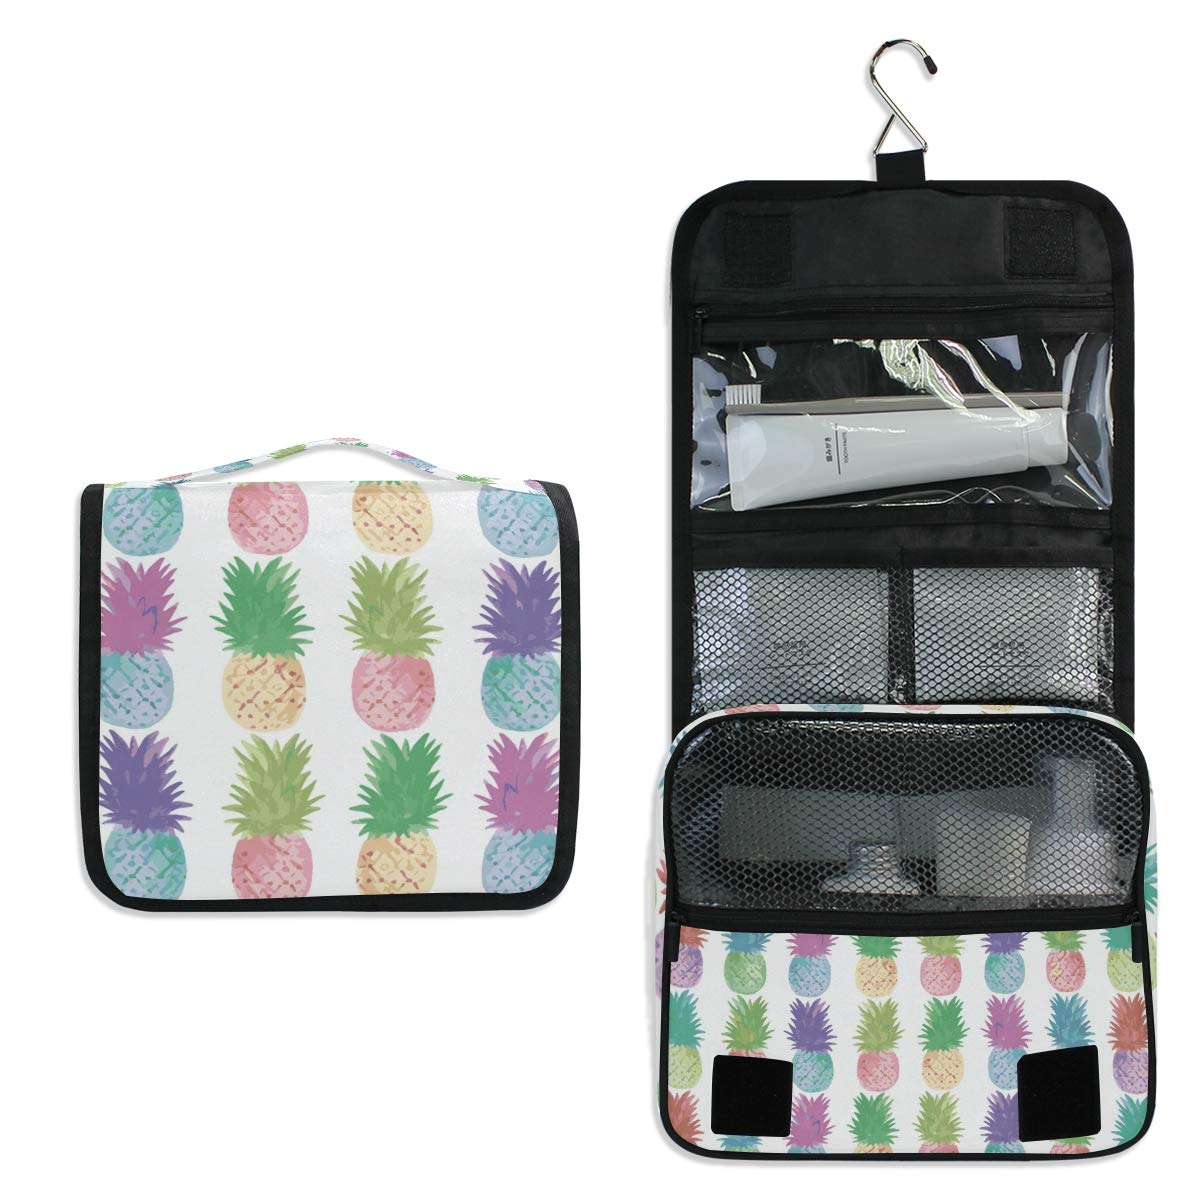 Hanging Travel Toiletry Bag - Summer Fruit Colorful Pineapple Waterproof Cosmetic Bag Portable Makeup Pouch for Toiletries Bathroom